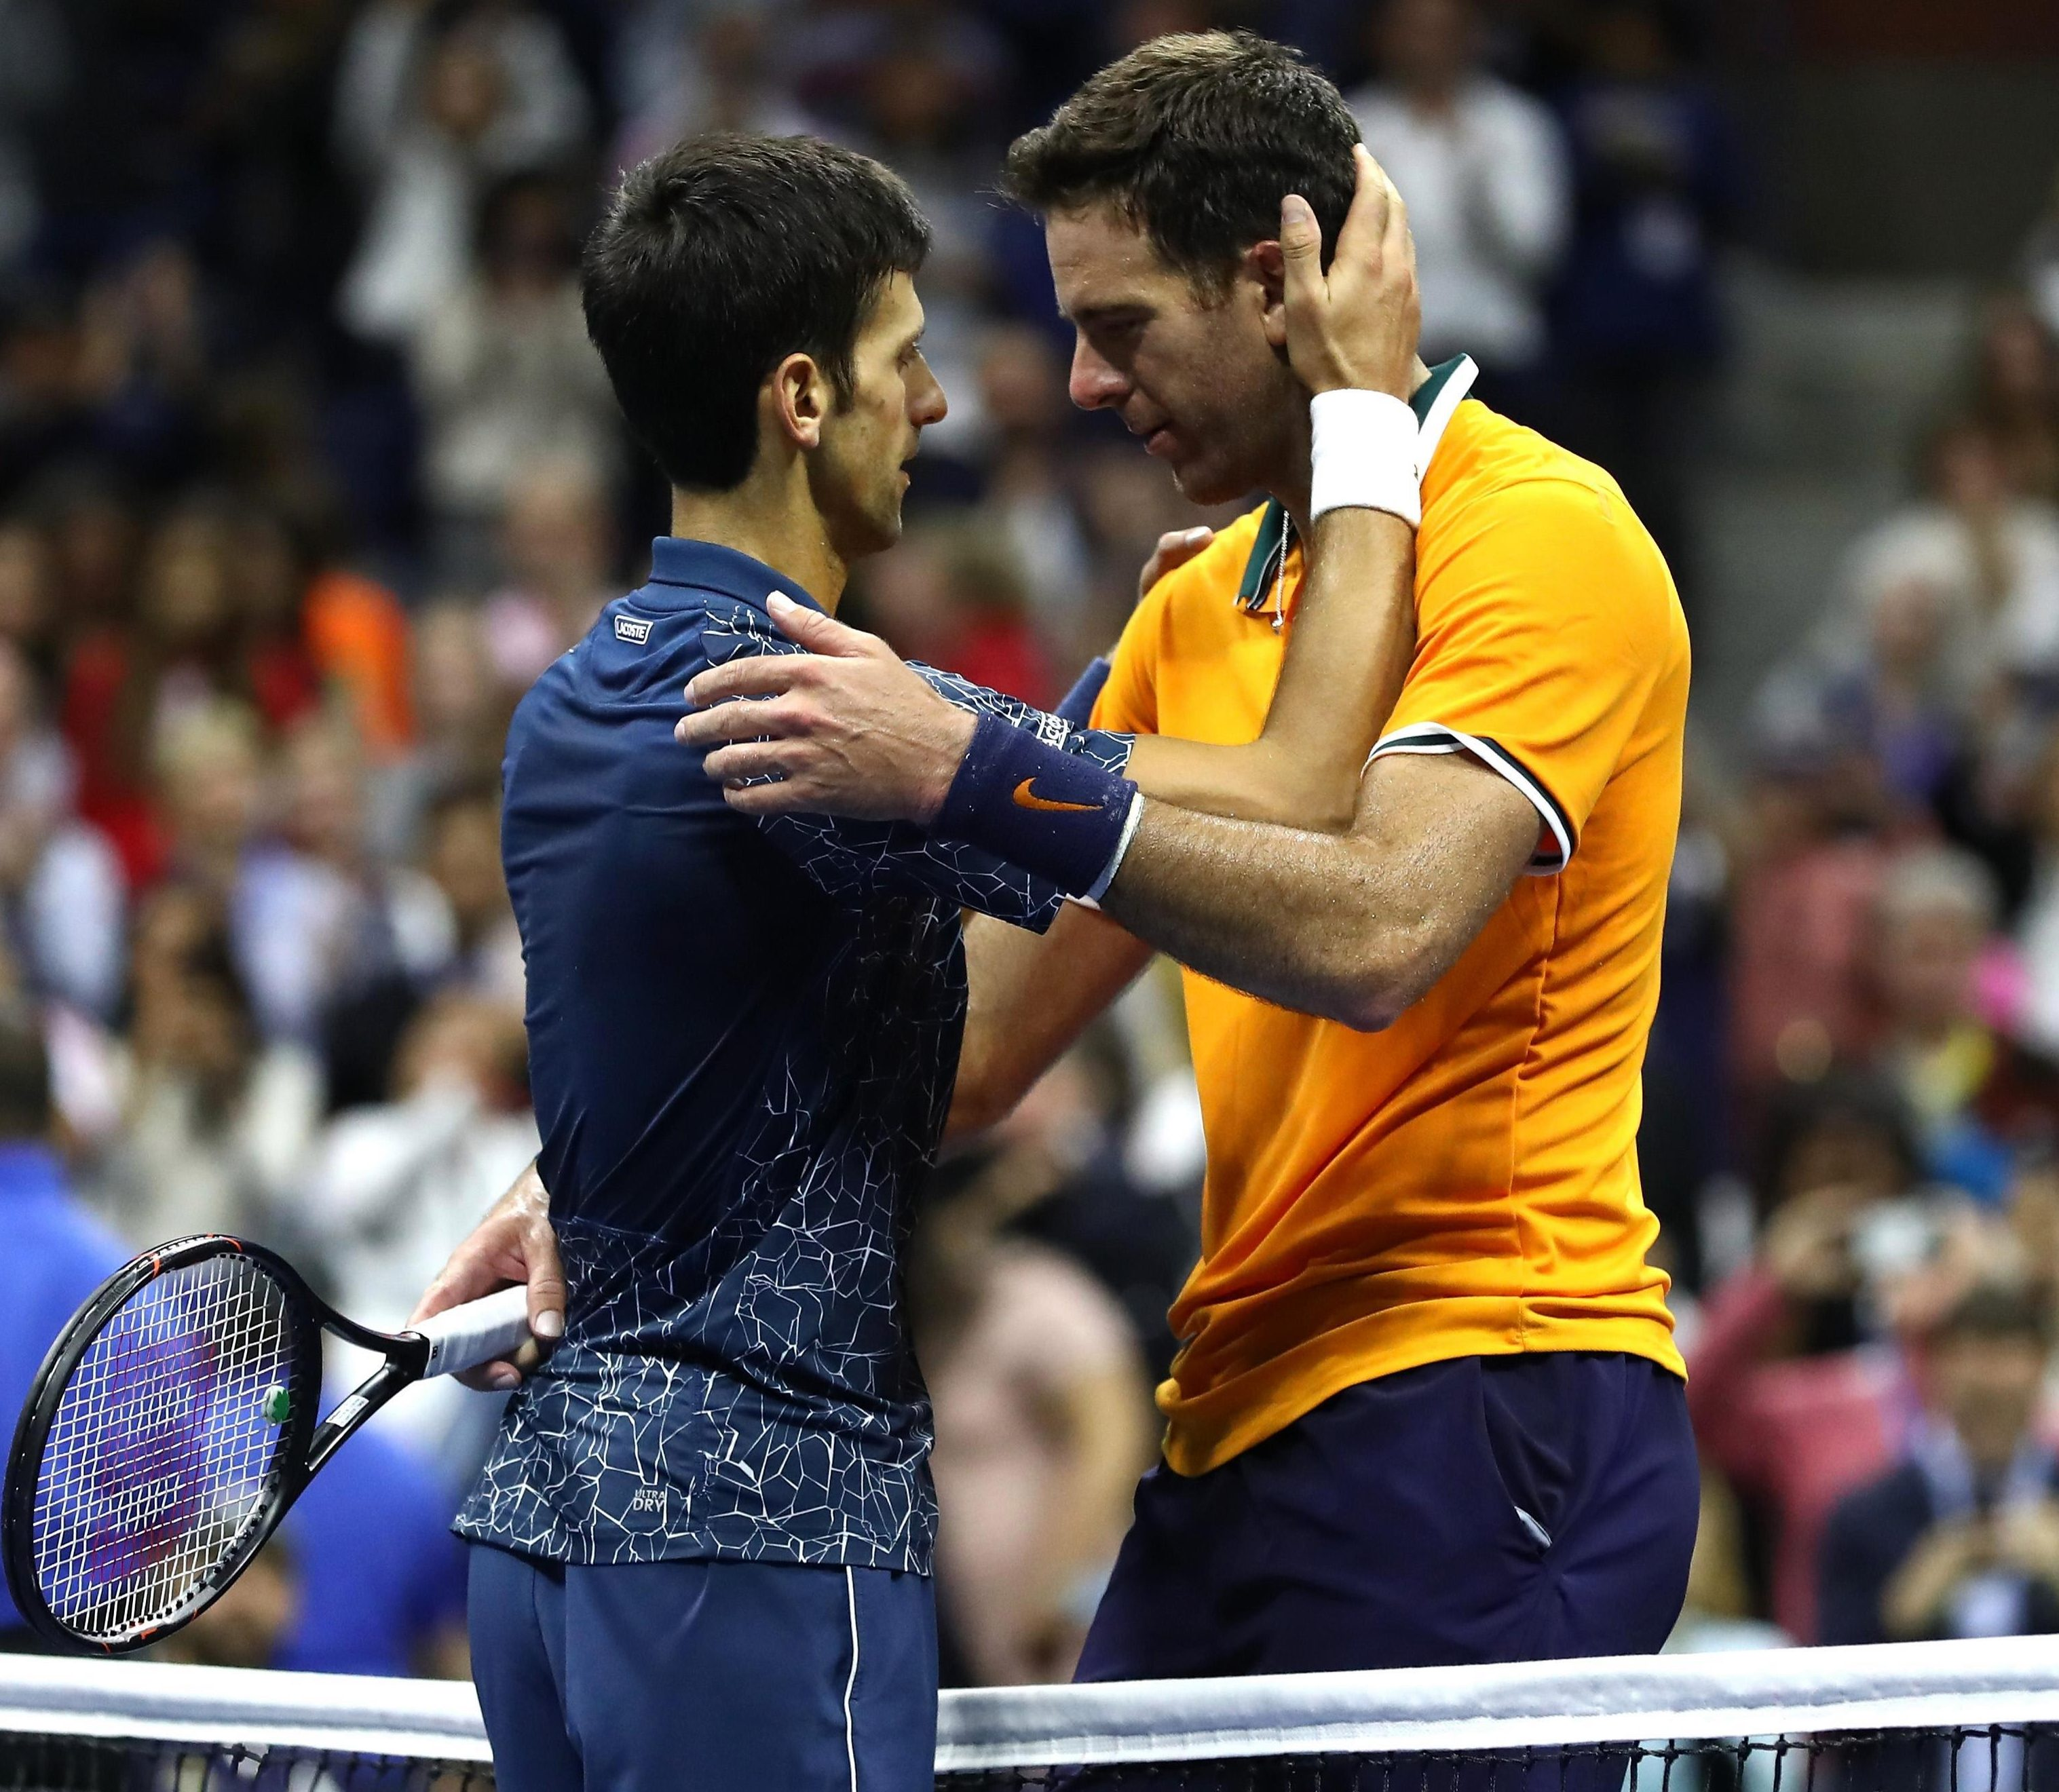 Novak Djokovic and Juan Martin del Potro embrace after their US Open final